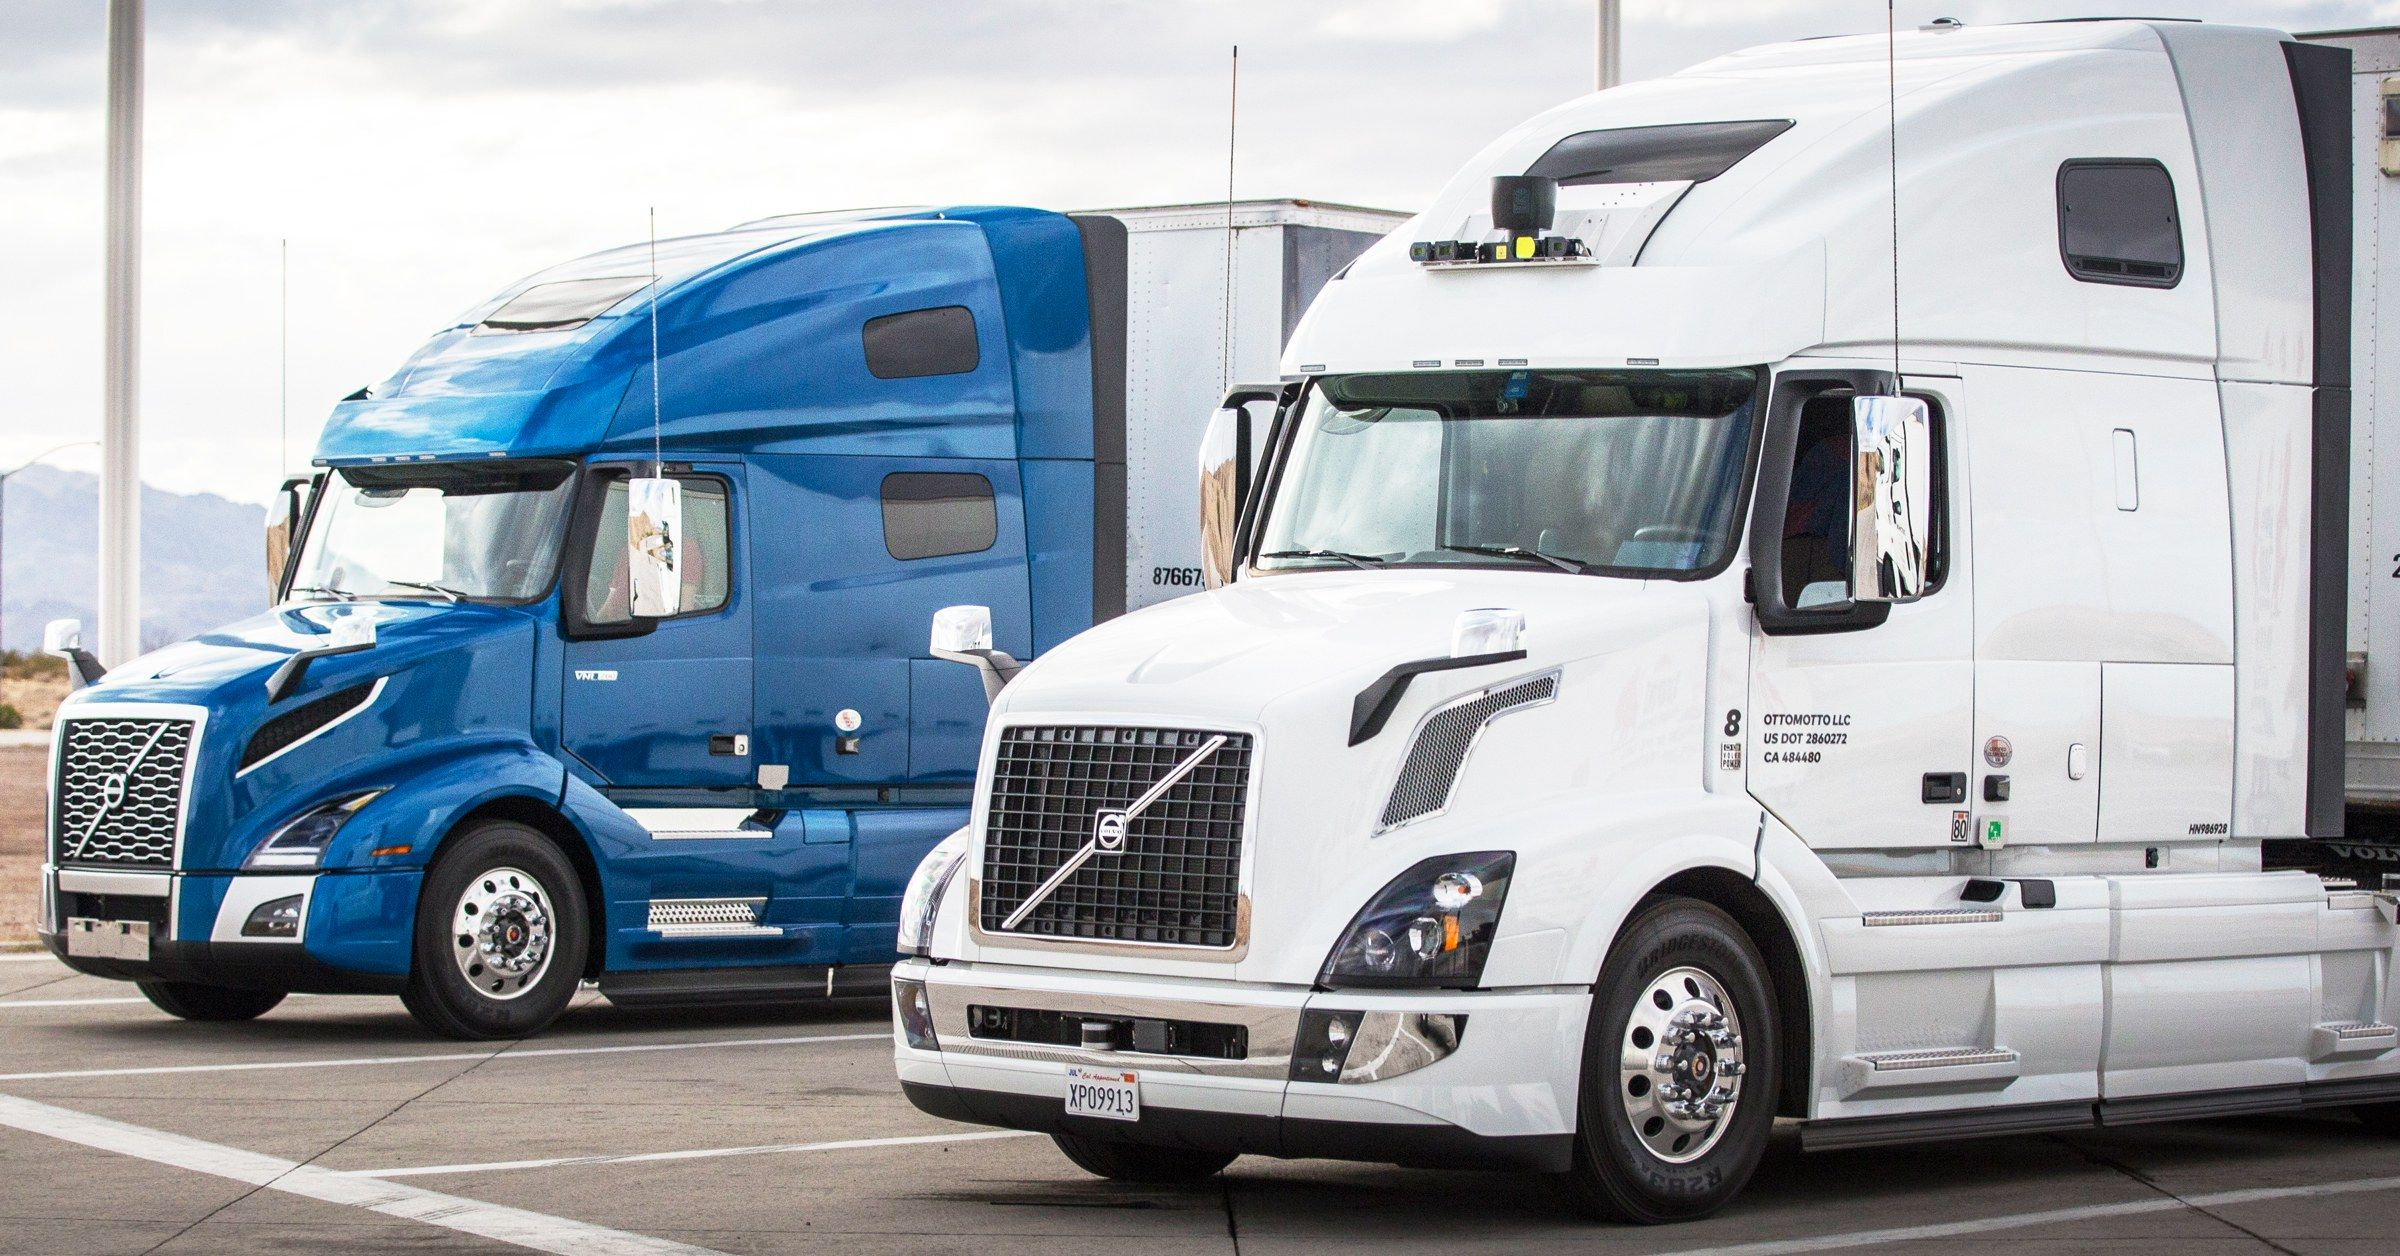 Uber S Self Driving Truck Scheme Hinges On Logistics Not Tech Self Driving Trucks Robot Truck